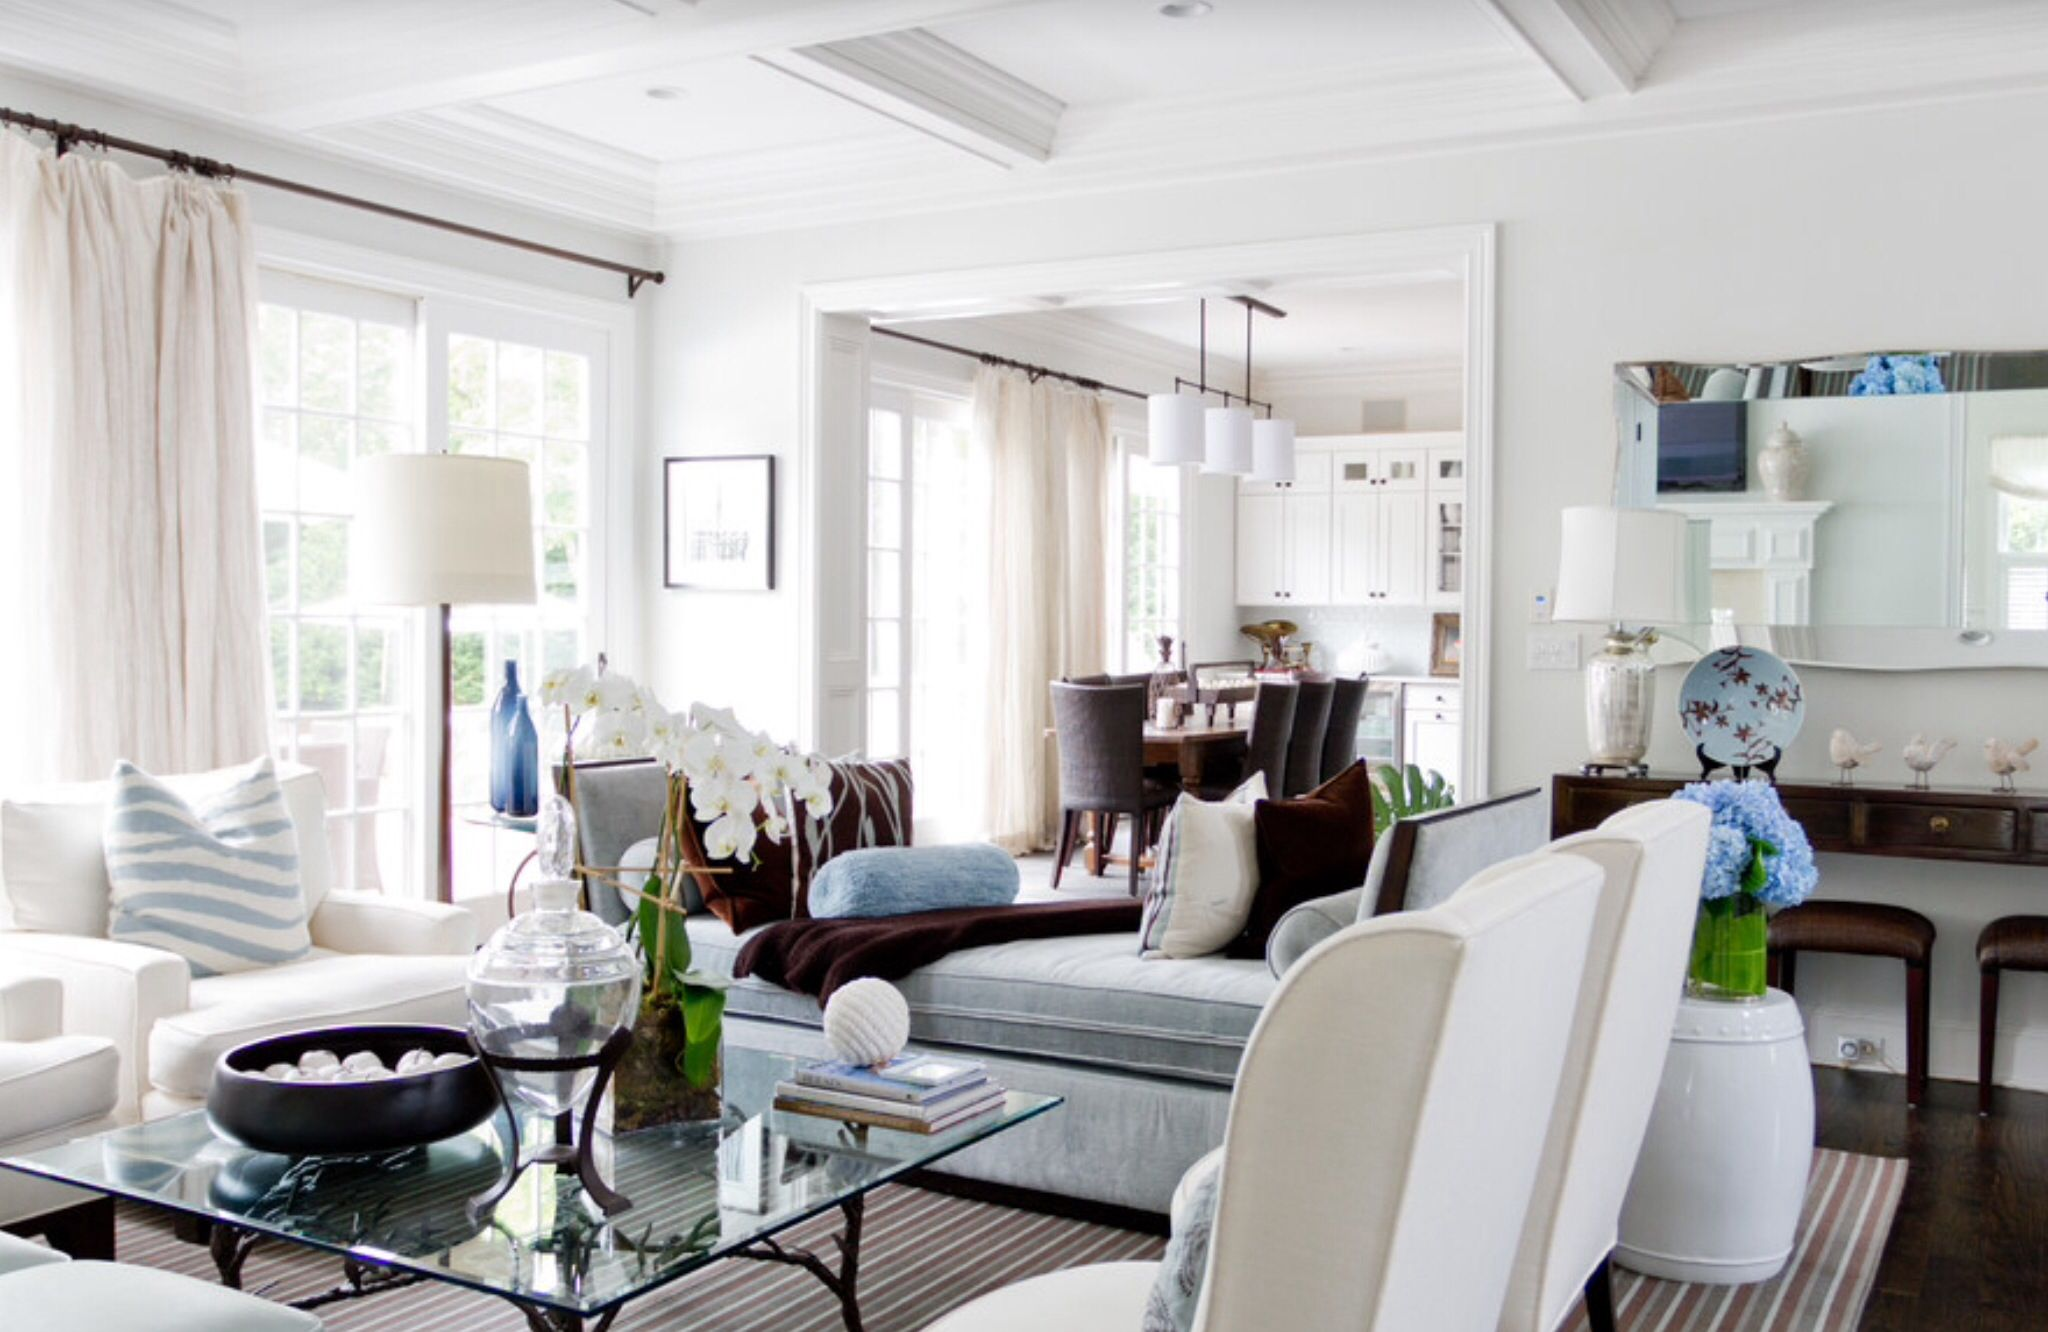 Living Room Design Houzz Impressive By Houzz  Salones  Pinterest  Houzz Design Inspiration